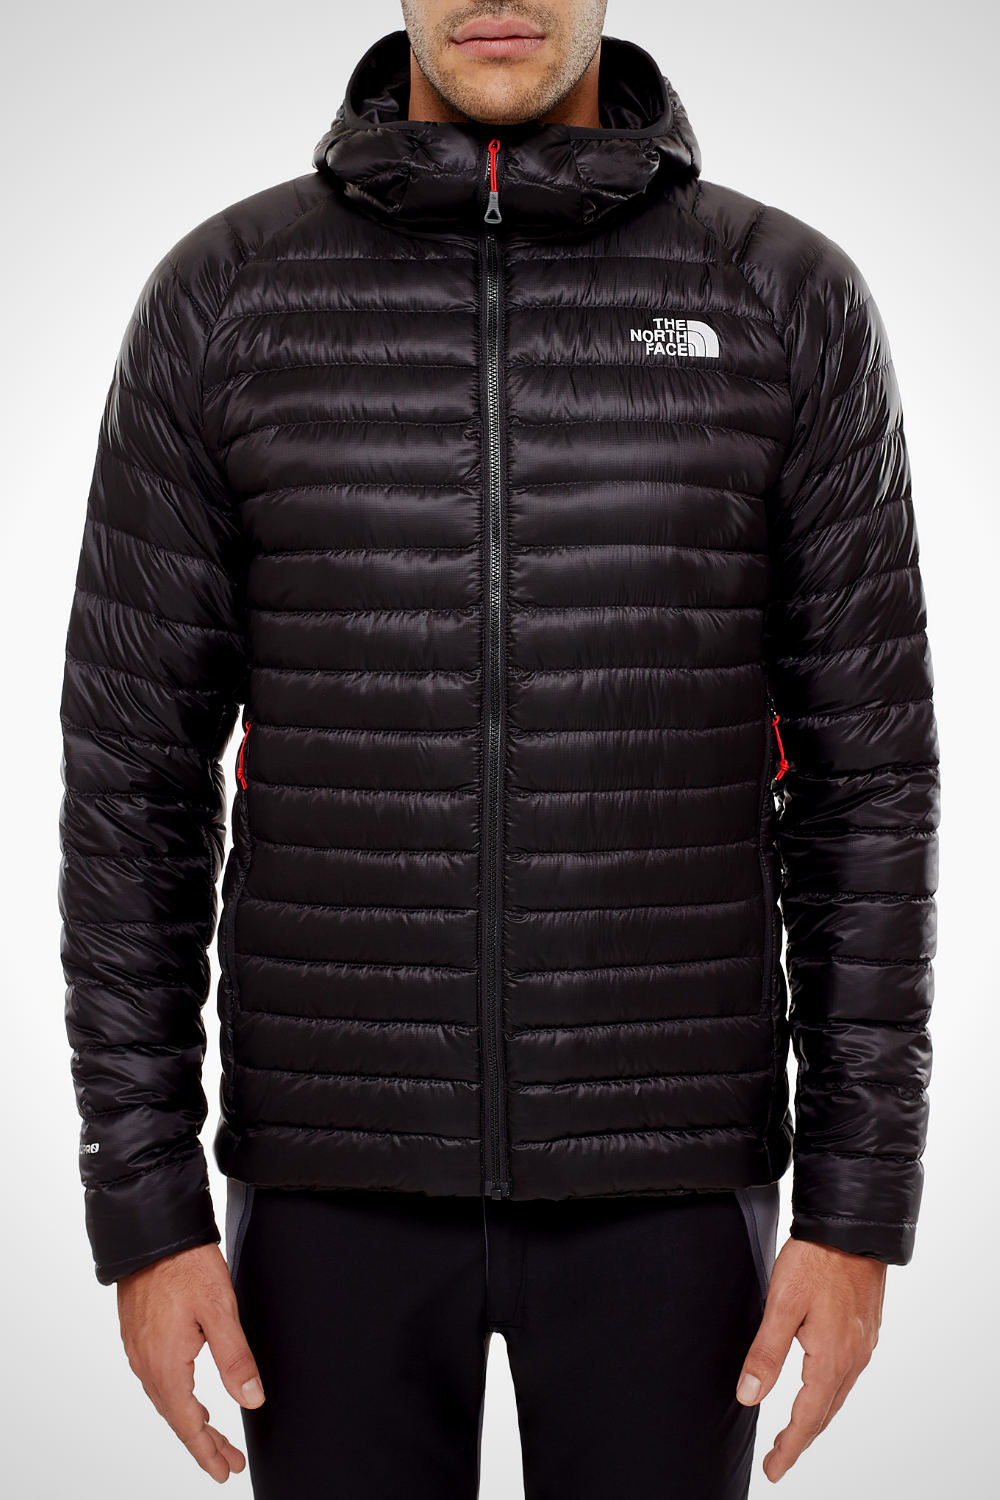 The North Face Men S Flare Down Jacket North Face Mens Jackets Modern Mens Fashion [ 1500 x 1000 Pixel ]